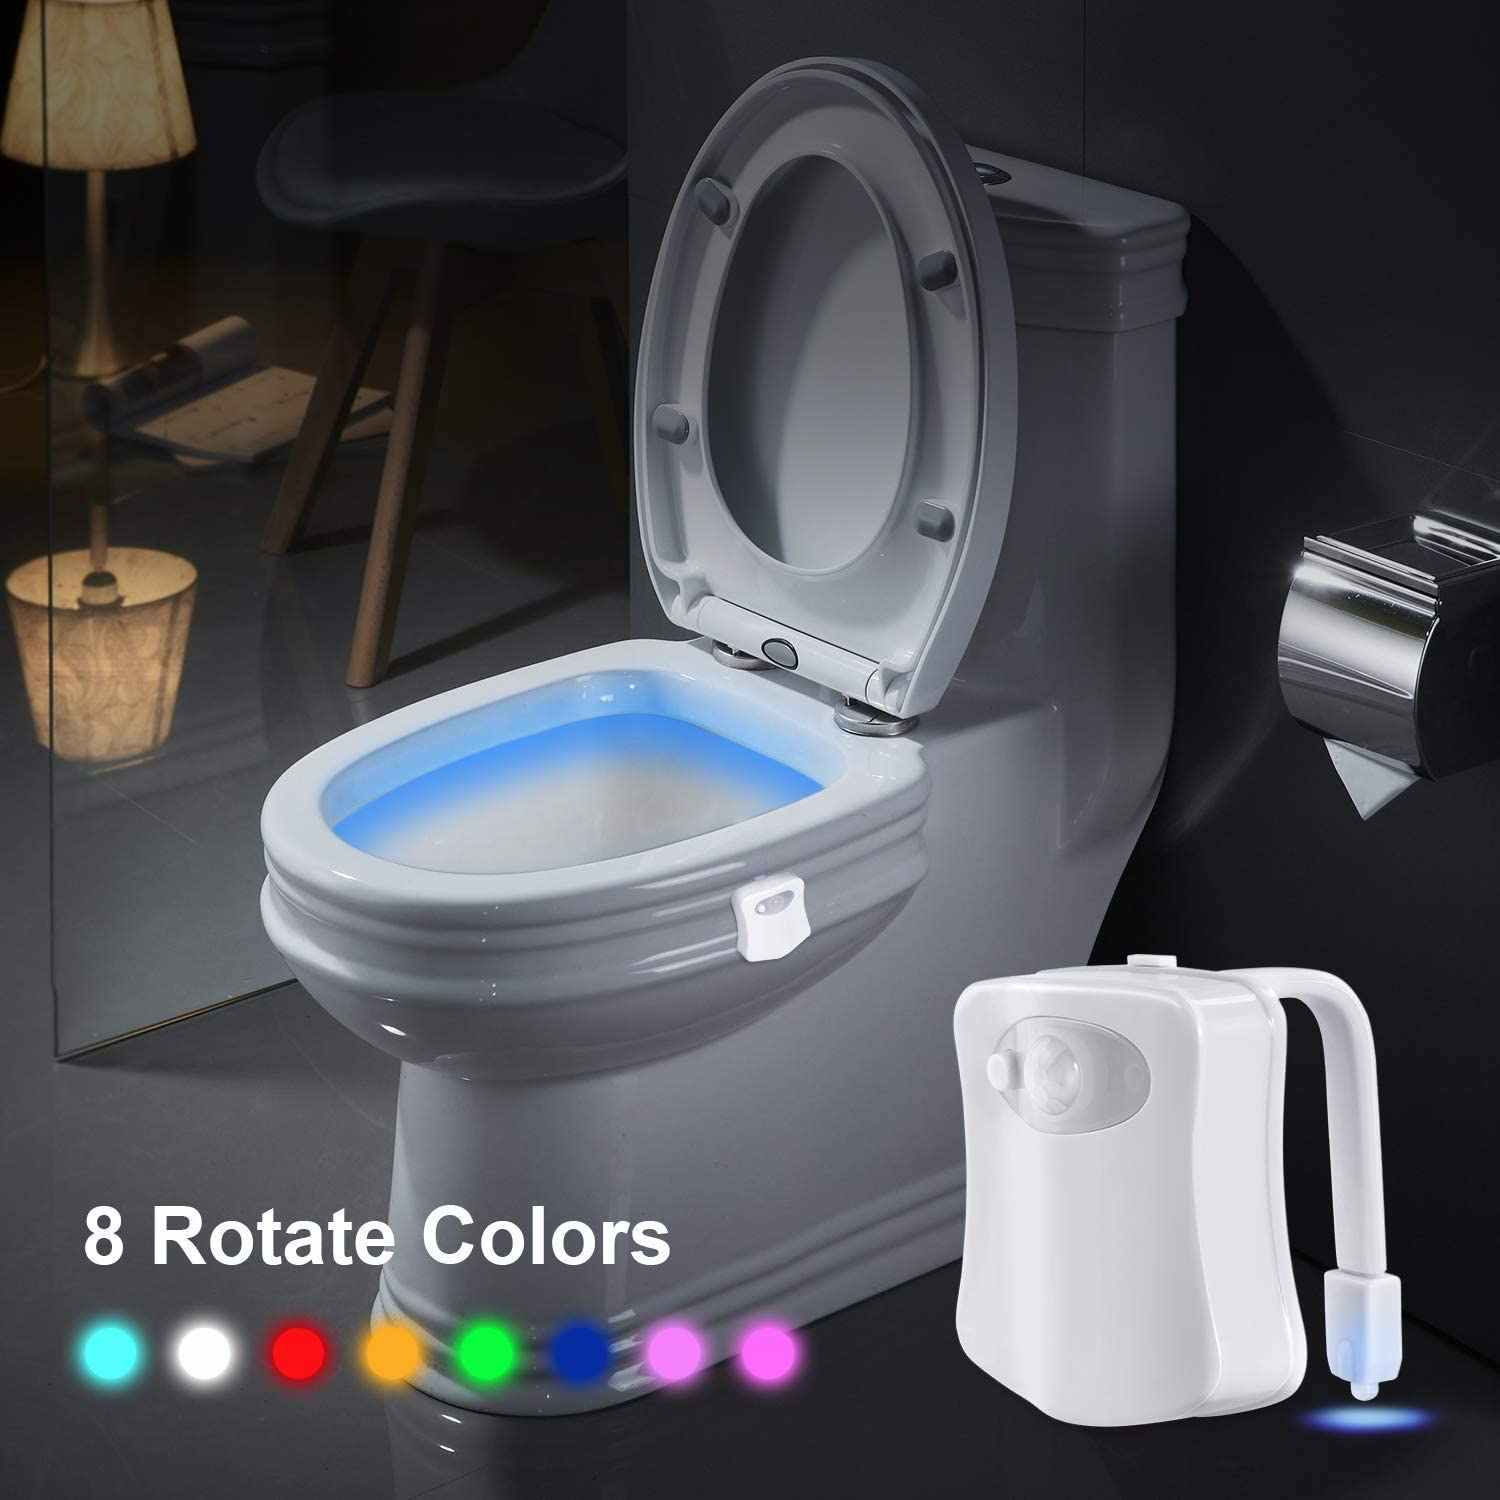 Leadly Toilet Night Light Smart Motion Sensor Led Night Lamp Battery Operated Wc Bedside Lamp Room Hallway Pathway Toilet Light Led Night Lights Aliexpress